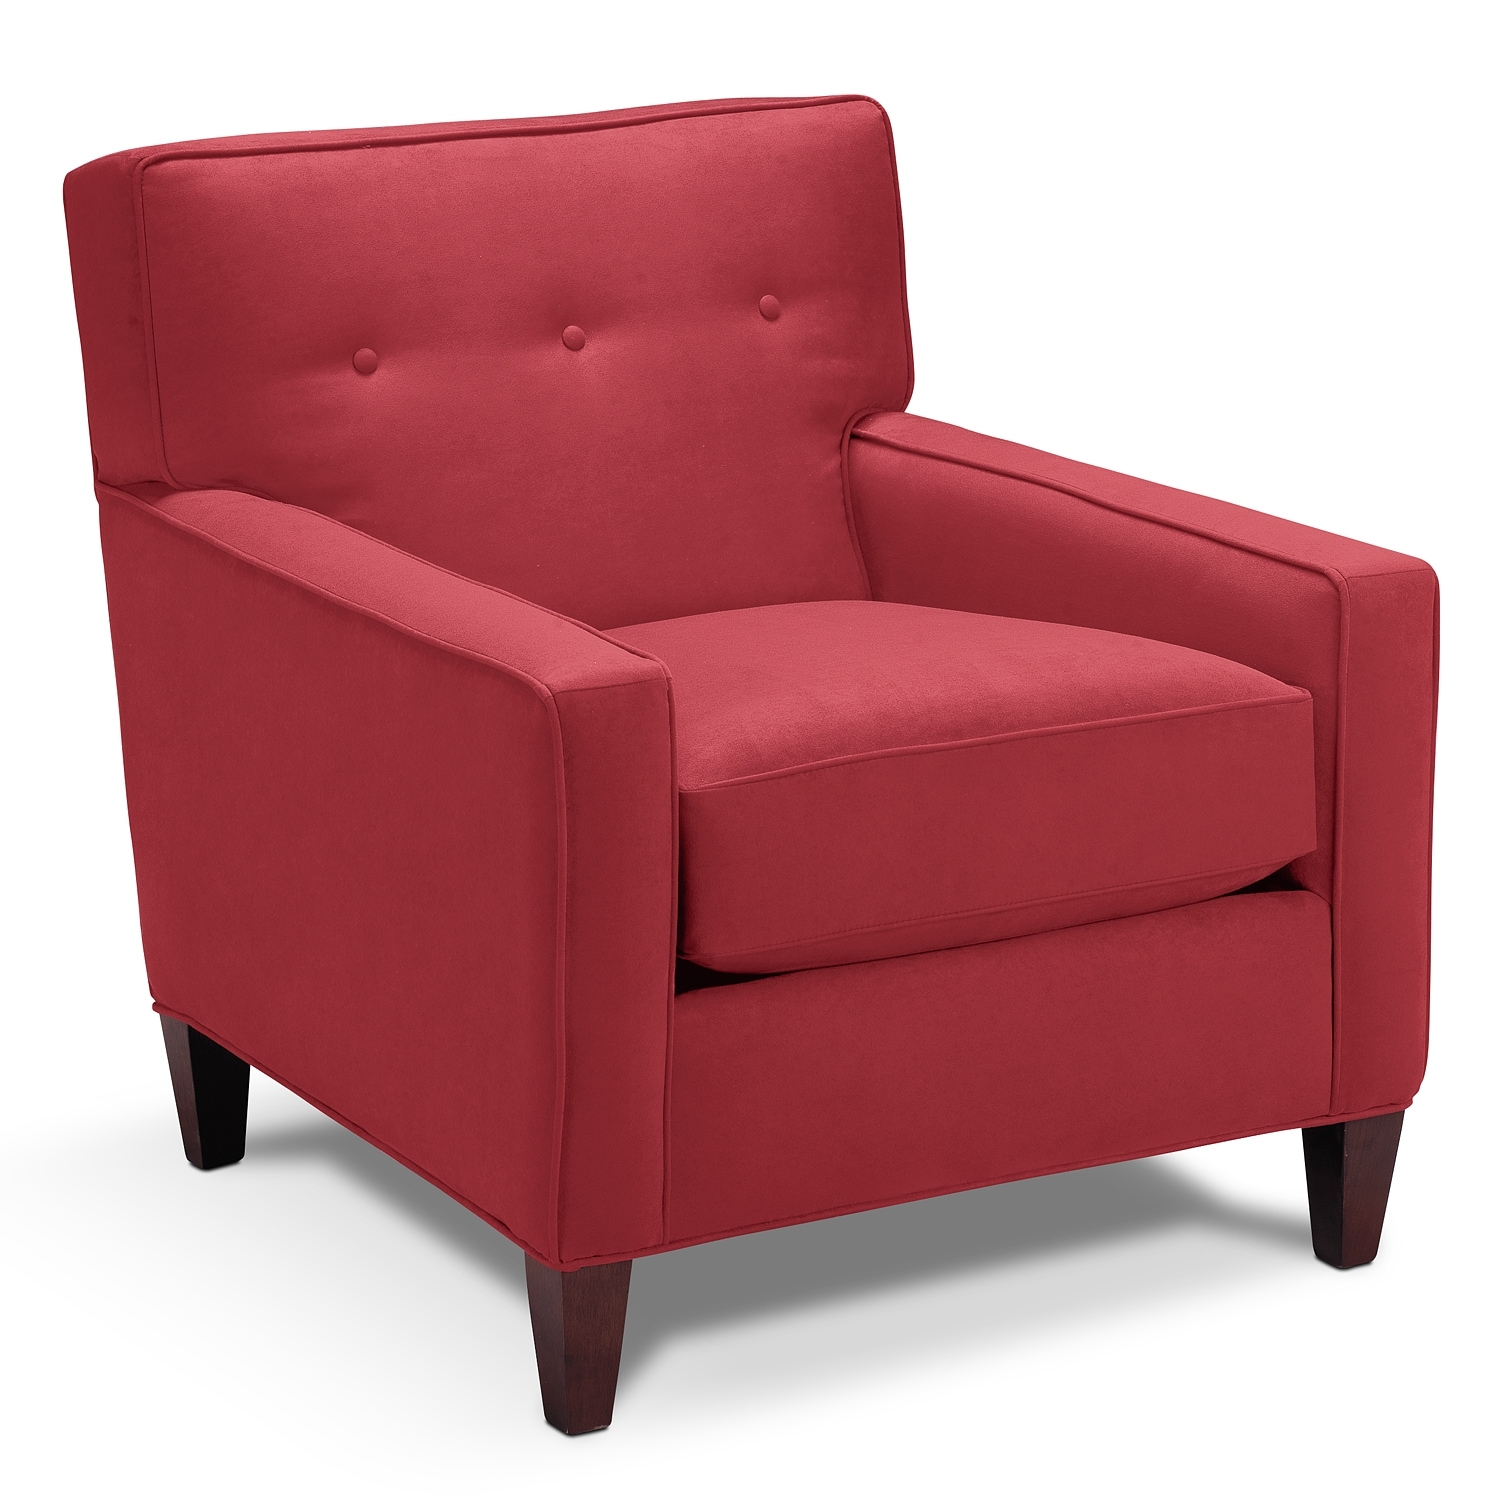 Soho upholstery accent chair value city furniture for Sitting room chairs